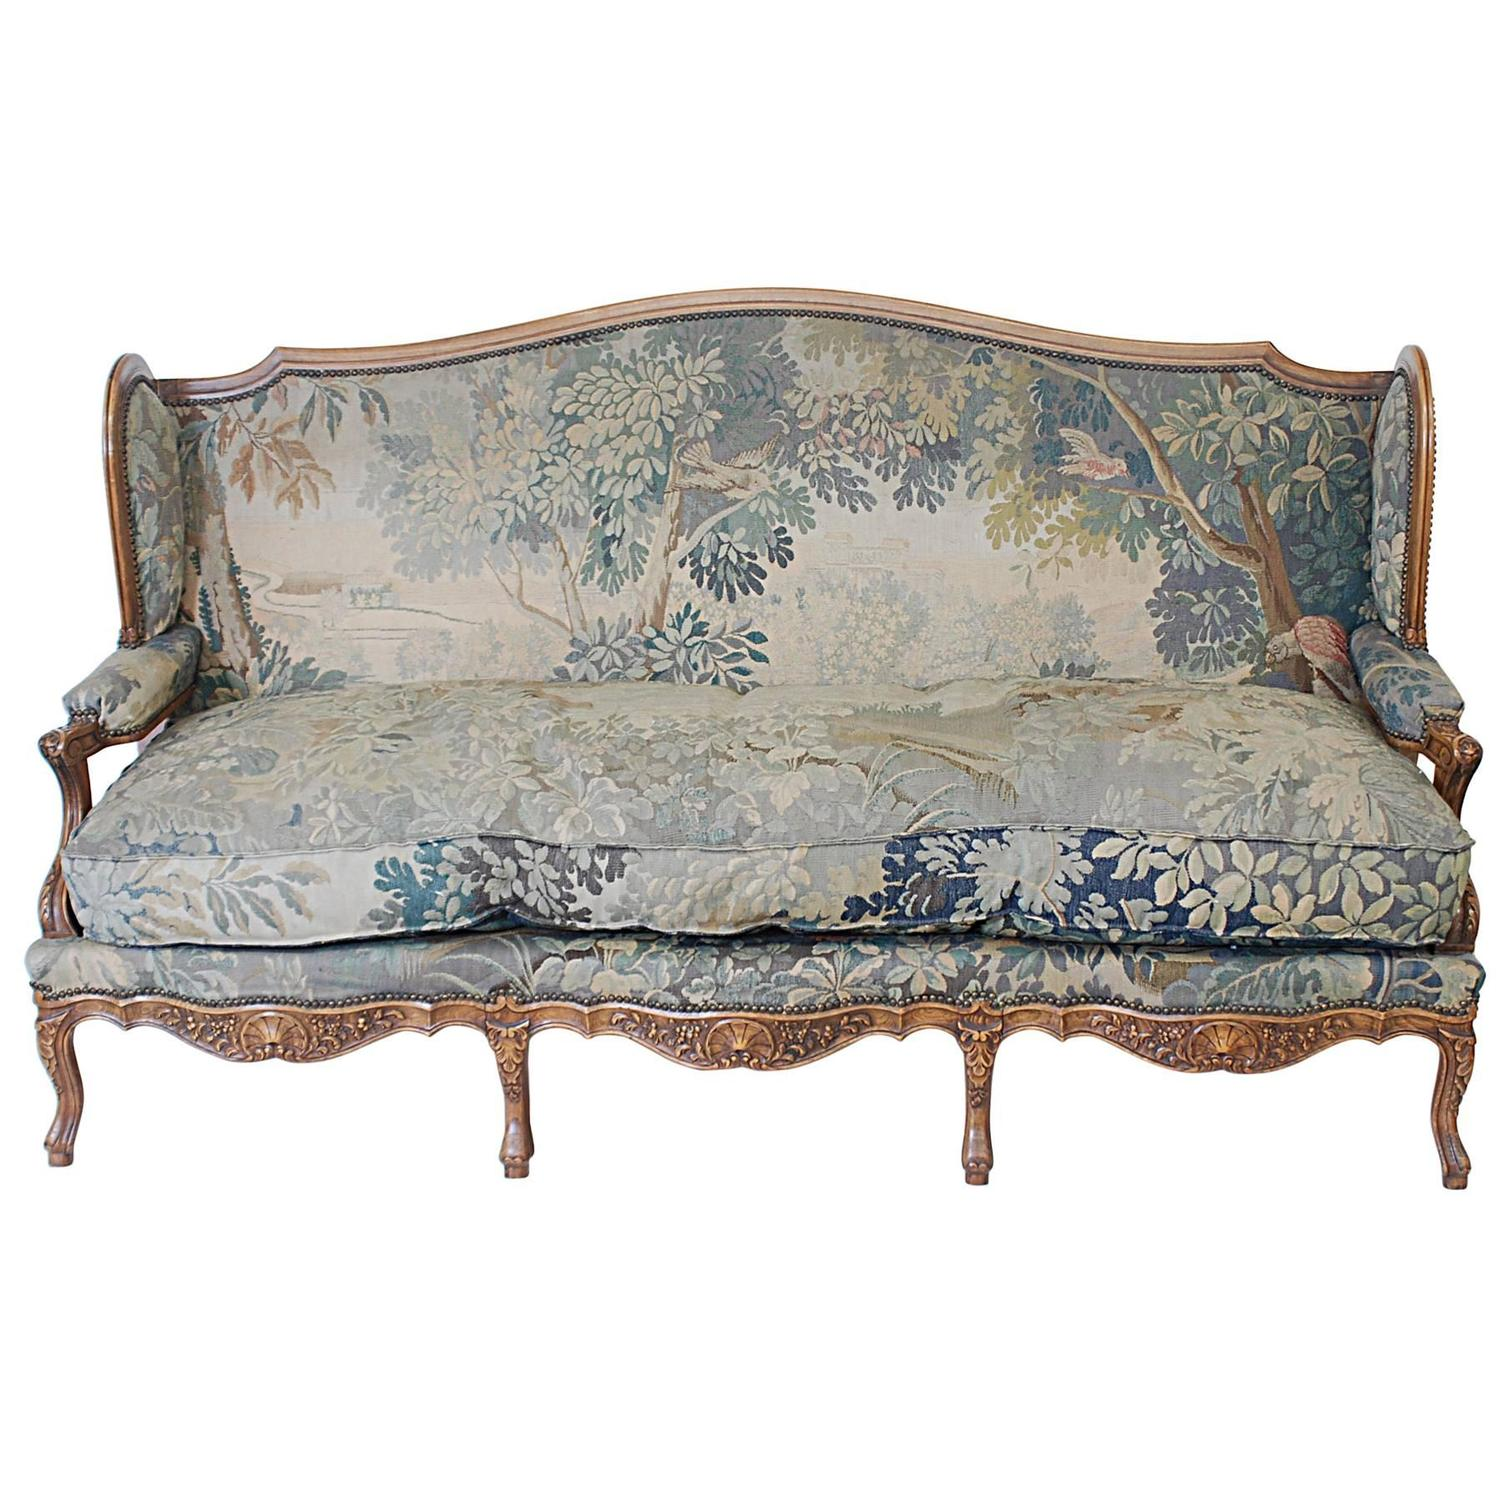 Louis xv style flemish canape at 1stdibs for Canape louis 15